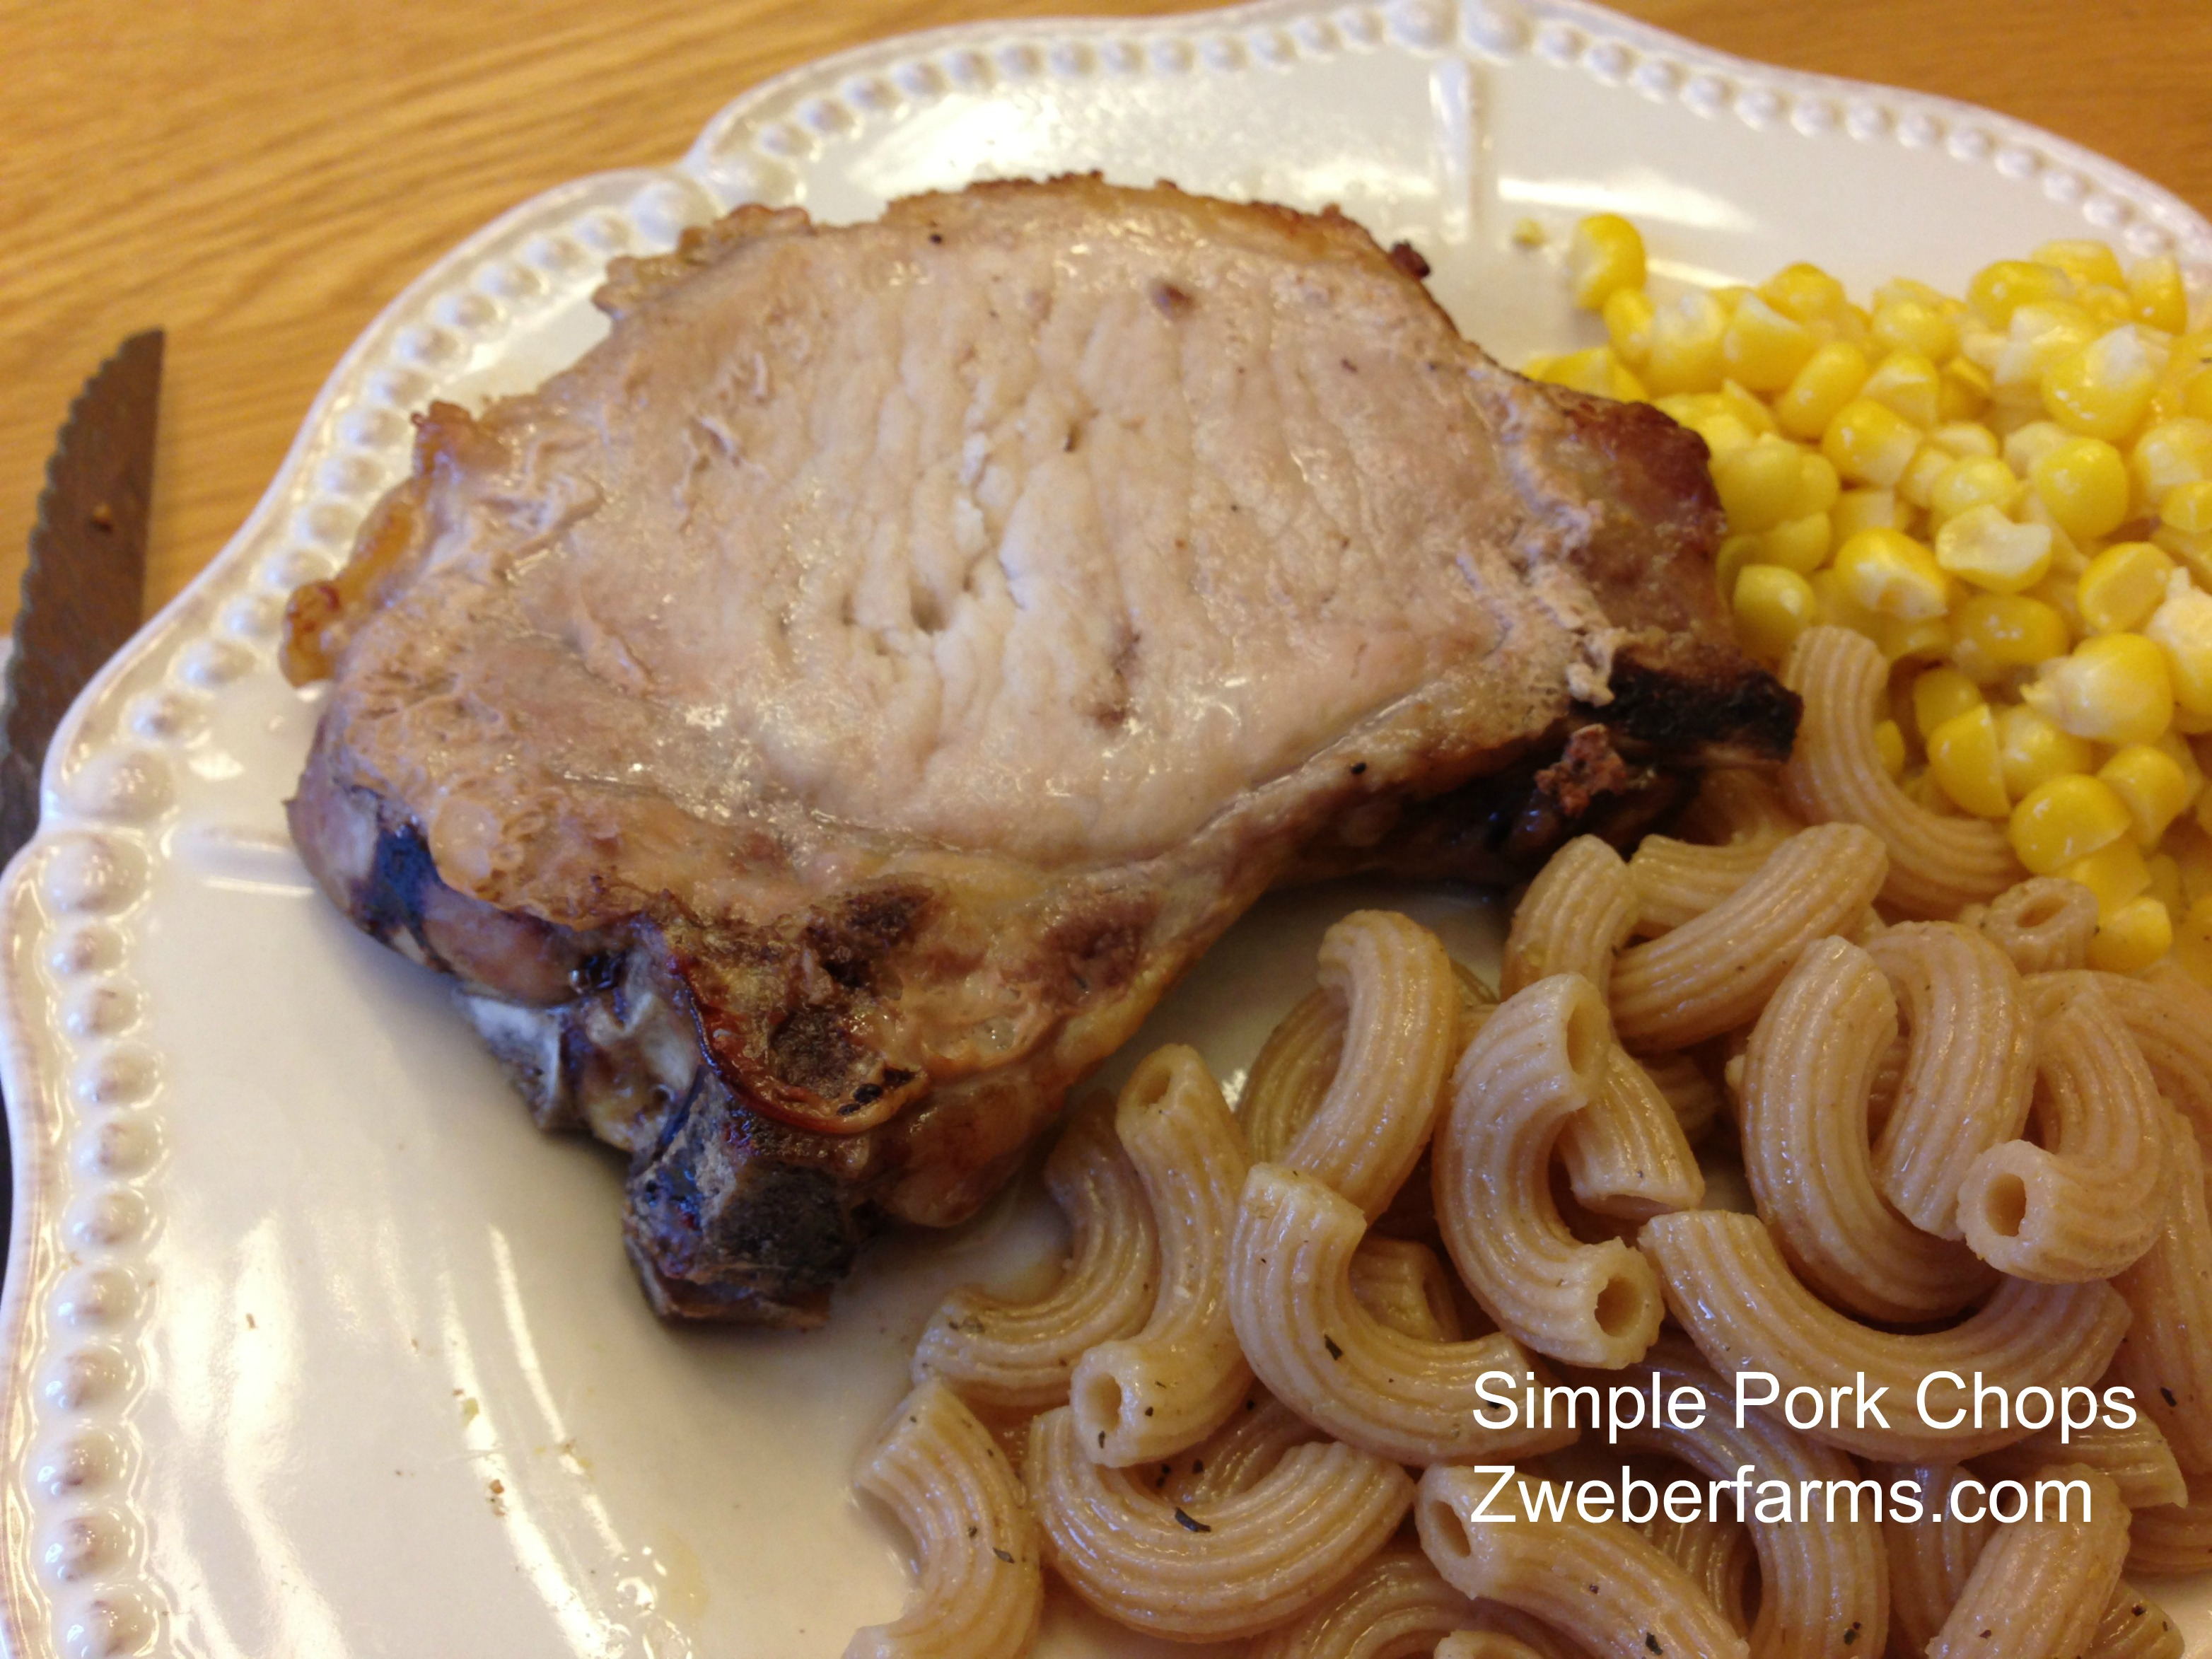 Simple Oven Baked Pork Chop Recipe, Zweberfarms